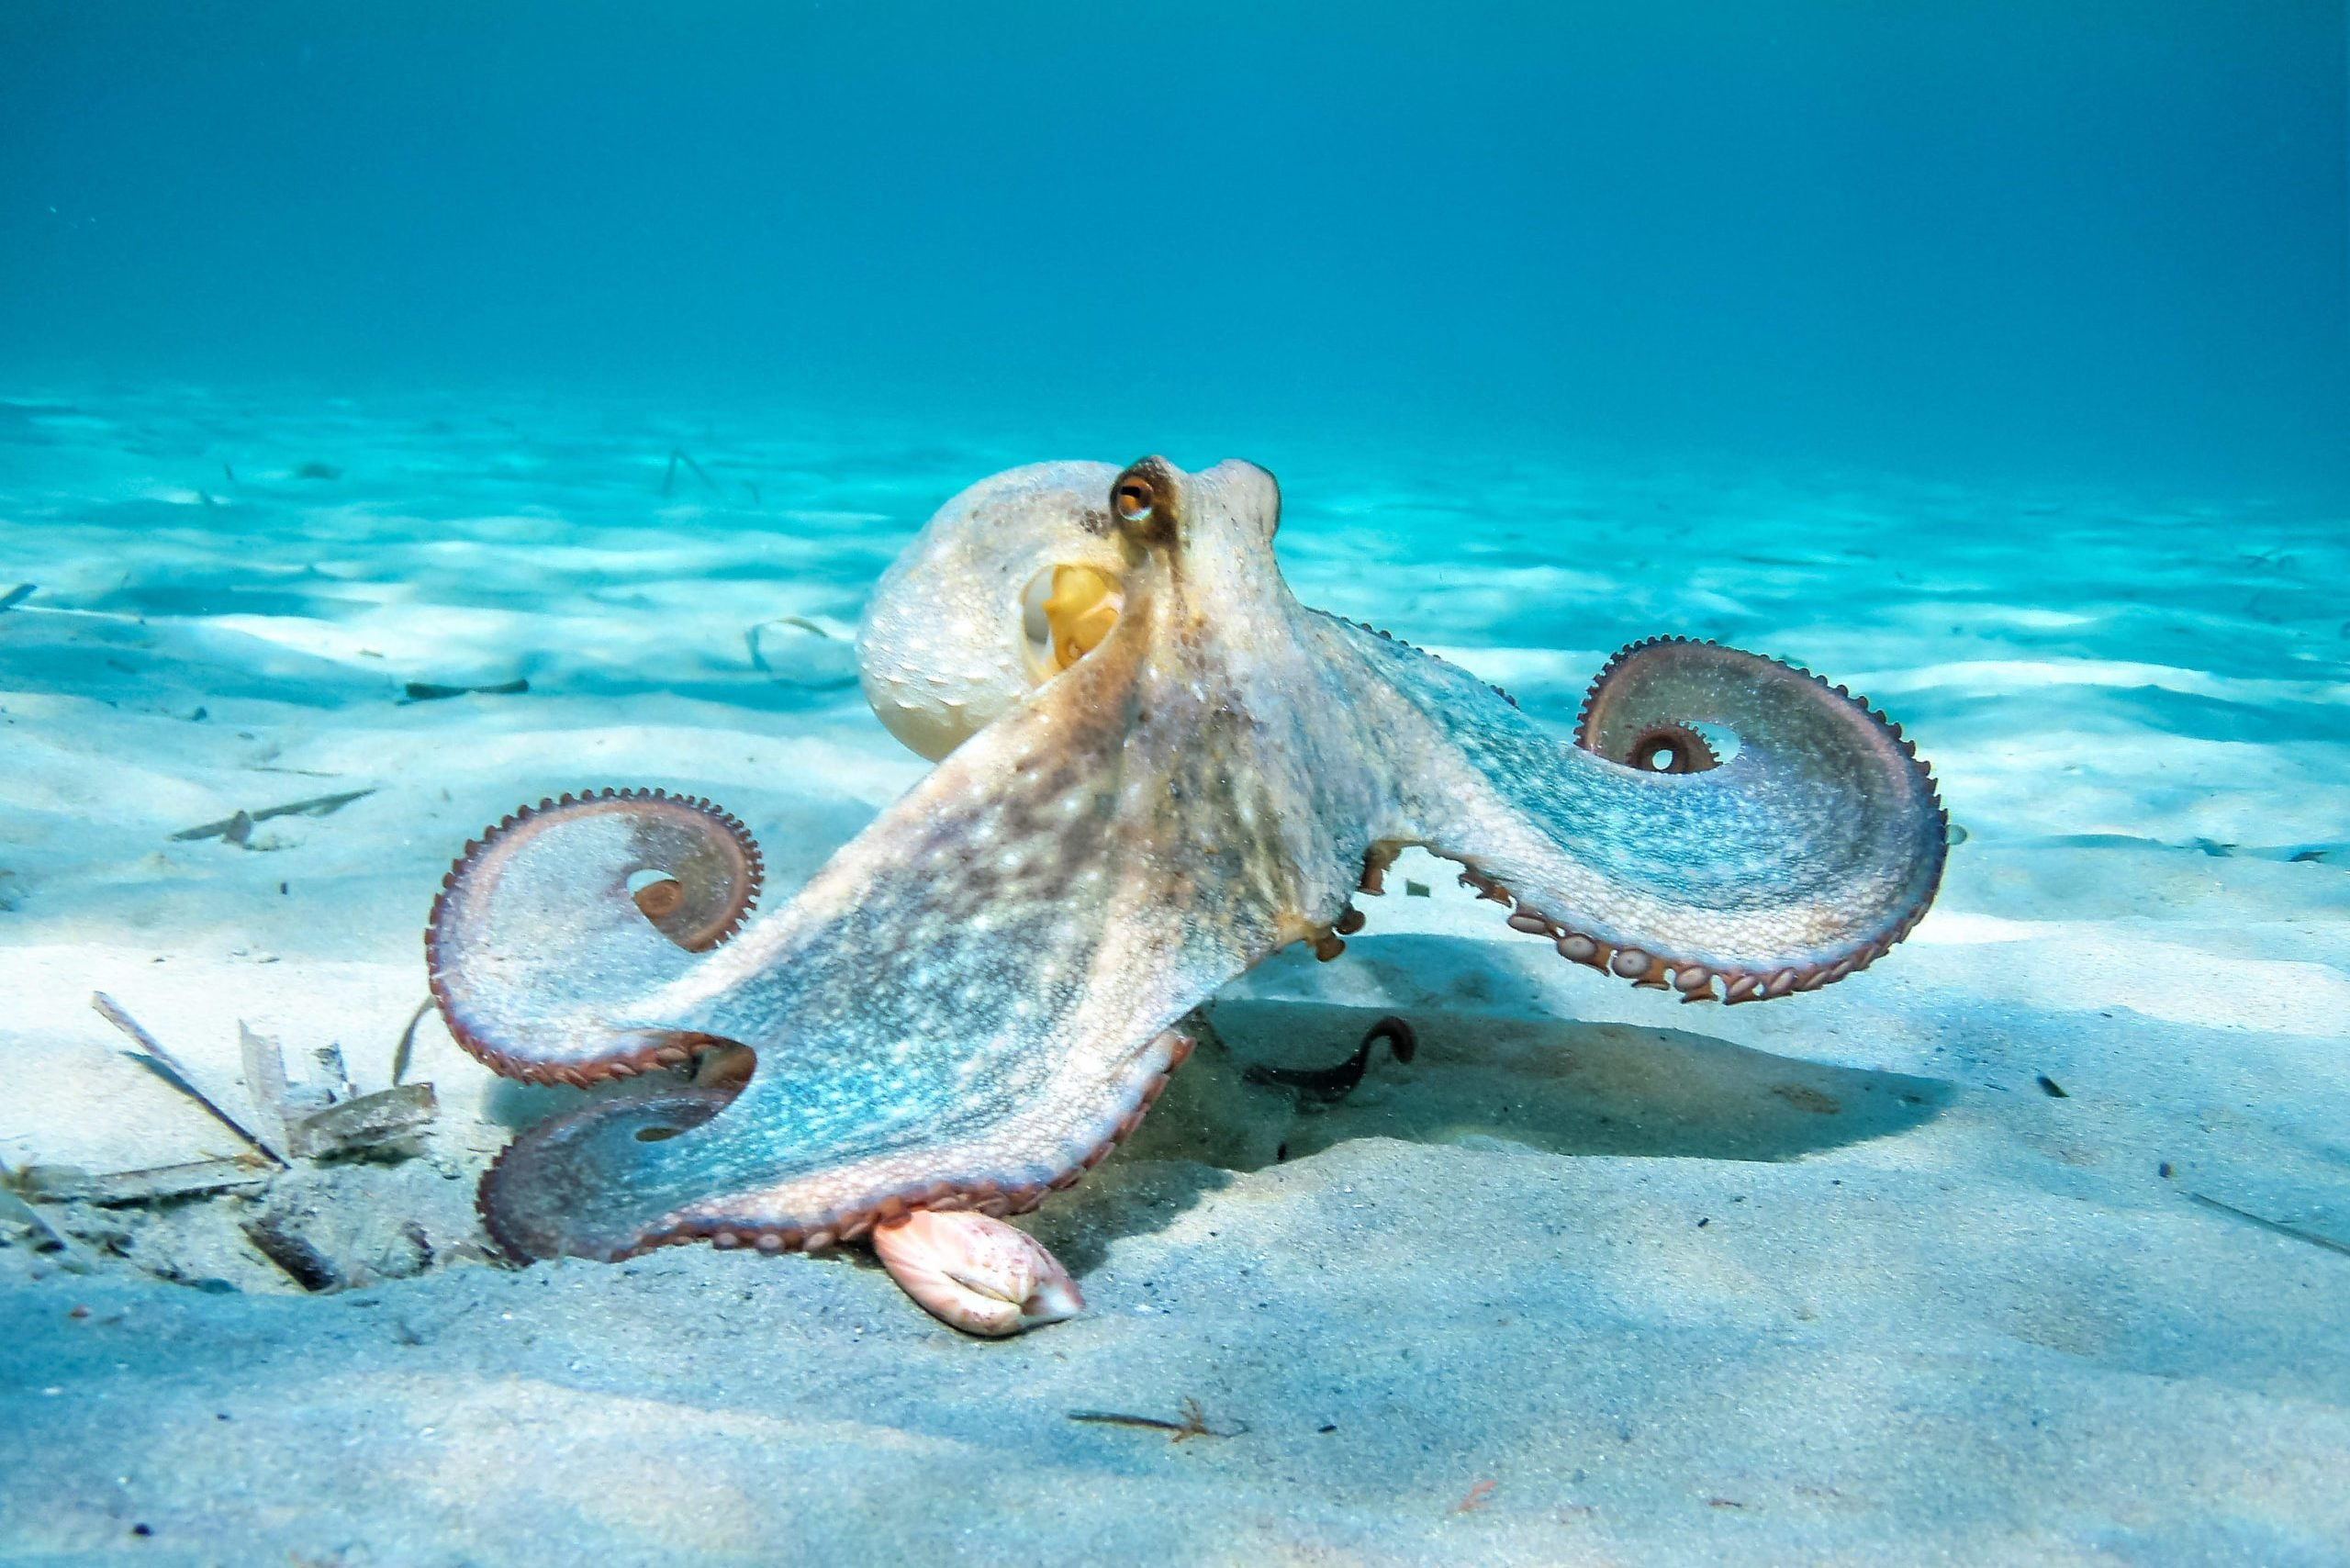 Octopus In Action